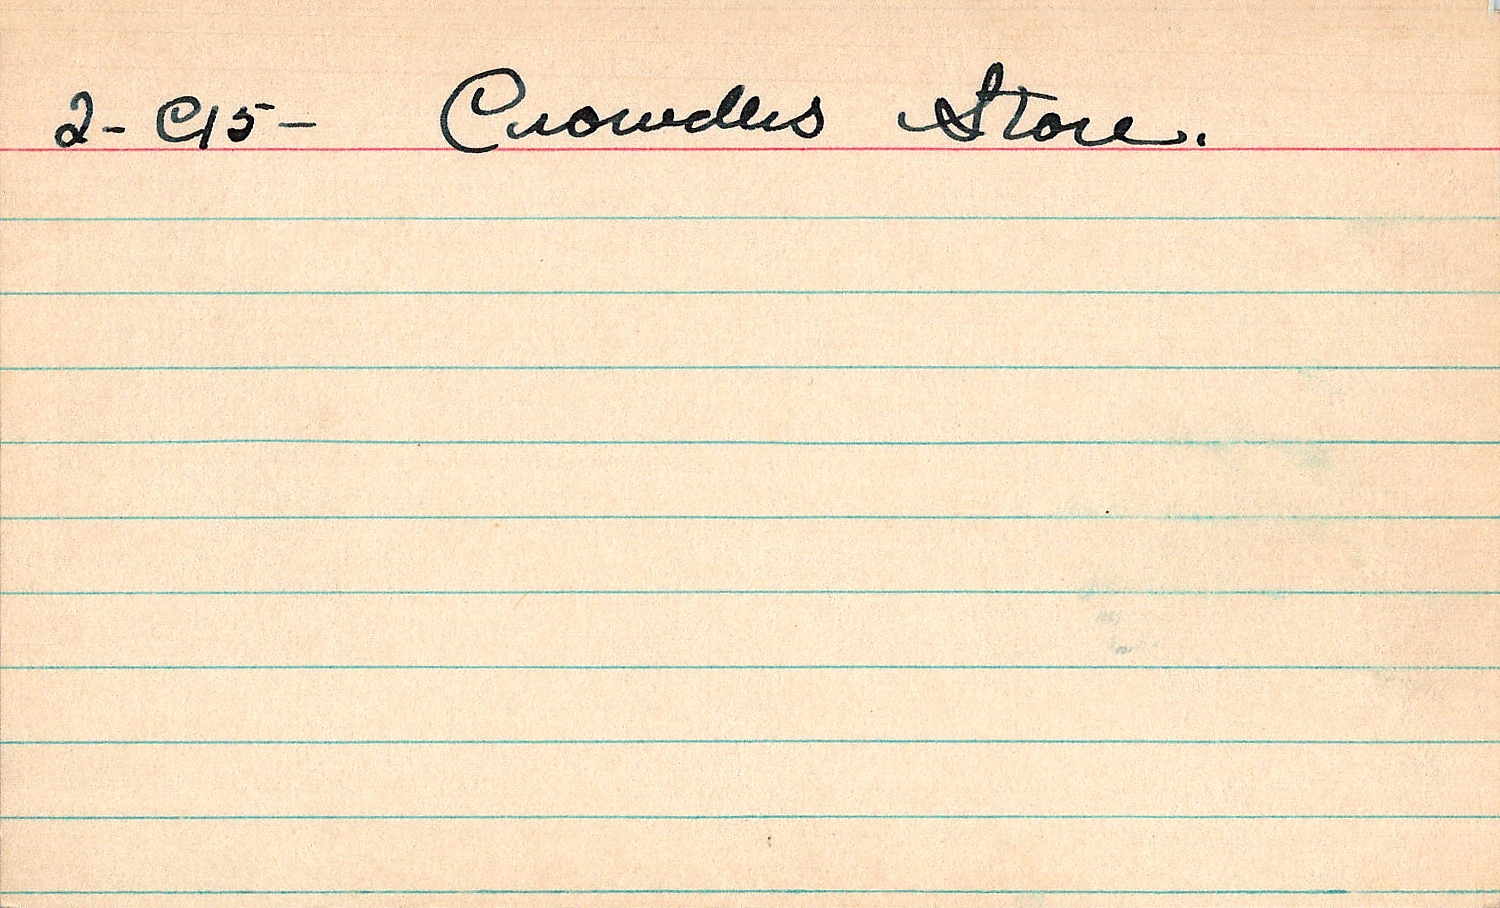 Index card for Crowder [Jewelry]